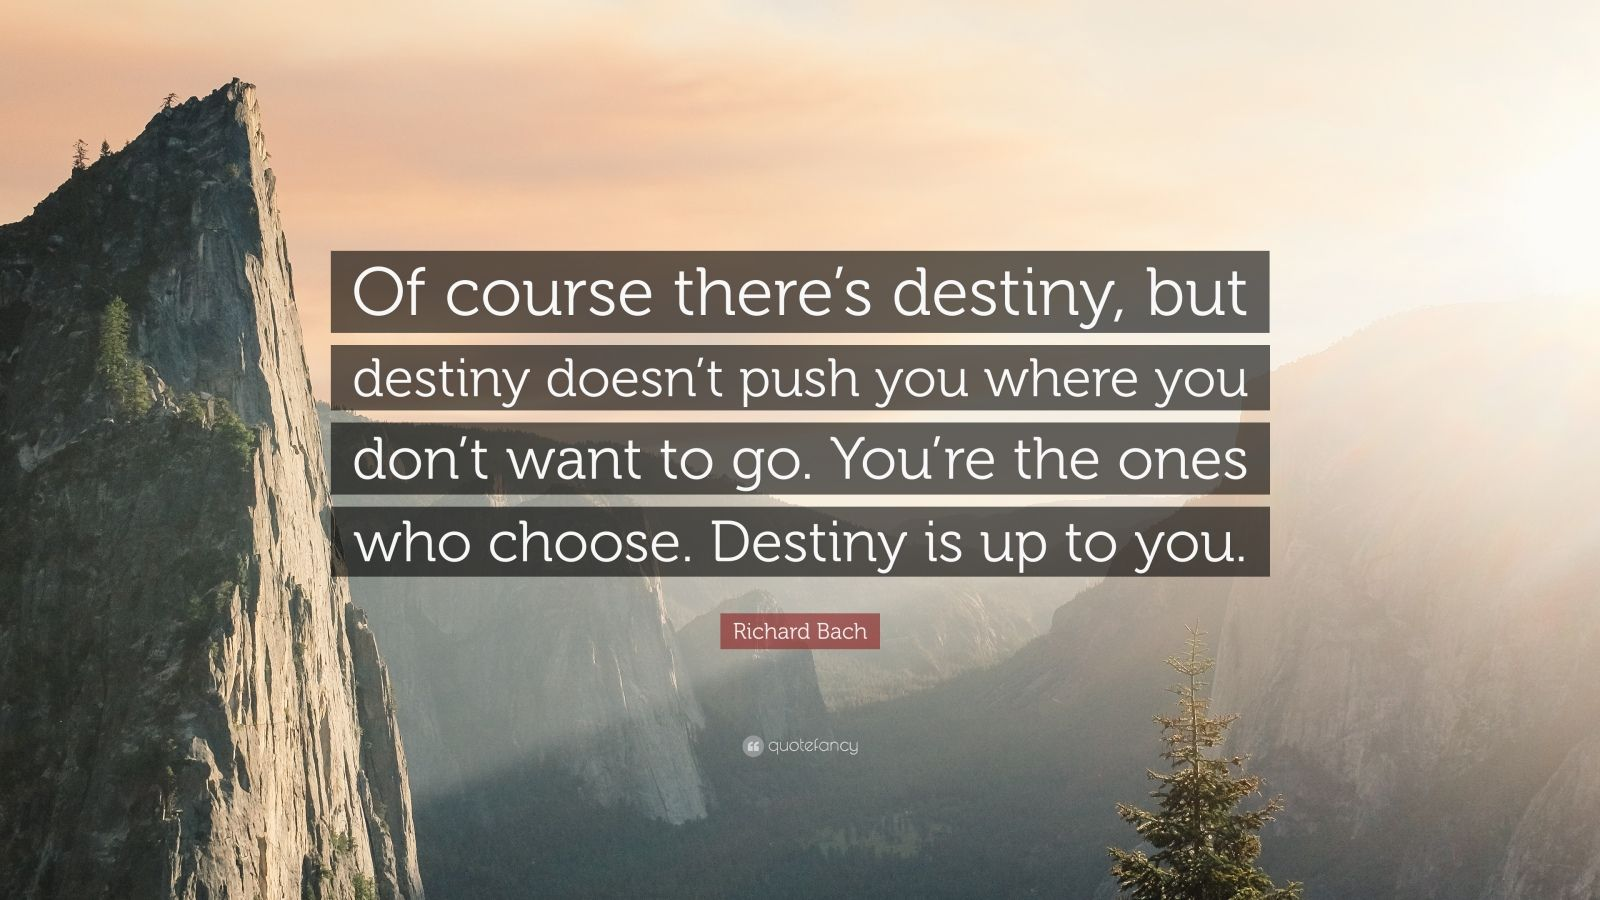 """Richard Bach Quote: """"Of course there's destiny, but destiny doesn't push you where you don't want to go. You're the ones who choose. Destiny is up to you."""""""